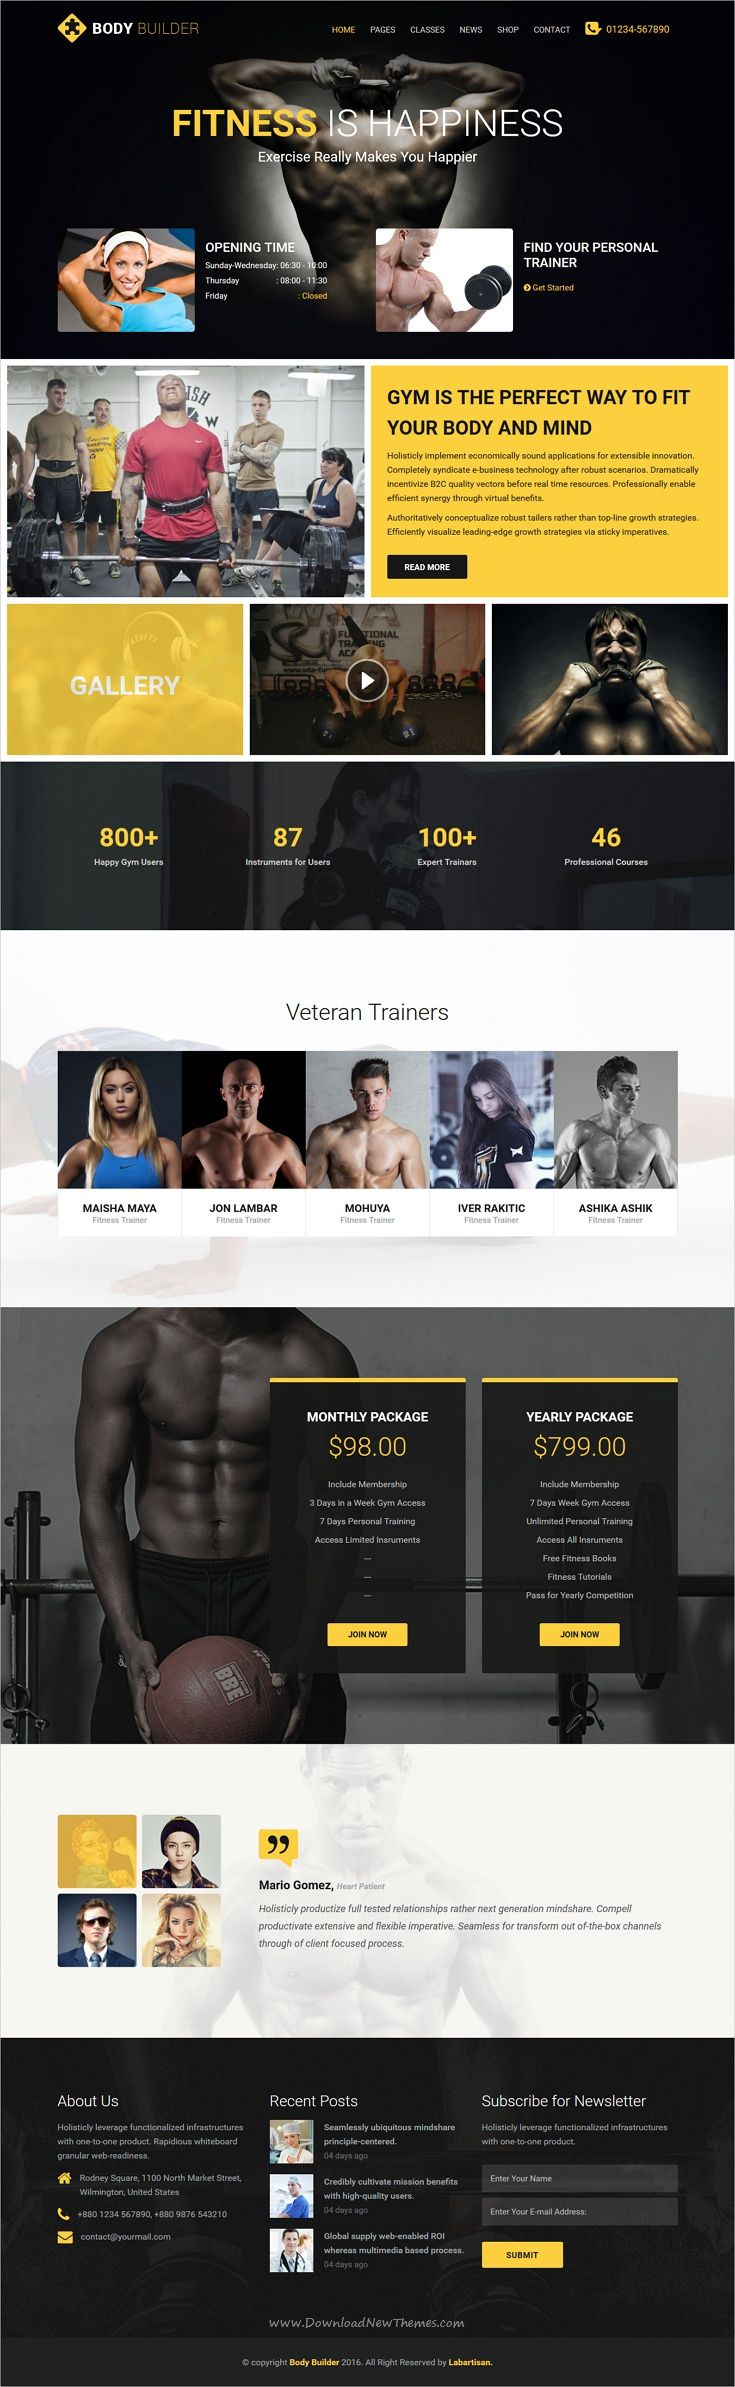 Body builder is a wonderful responsive 2in1 HTML #bootstrap ...